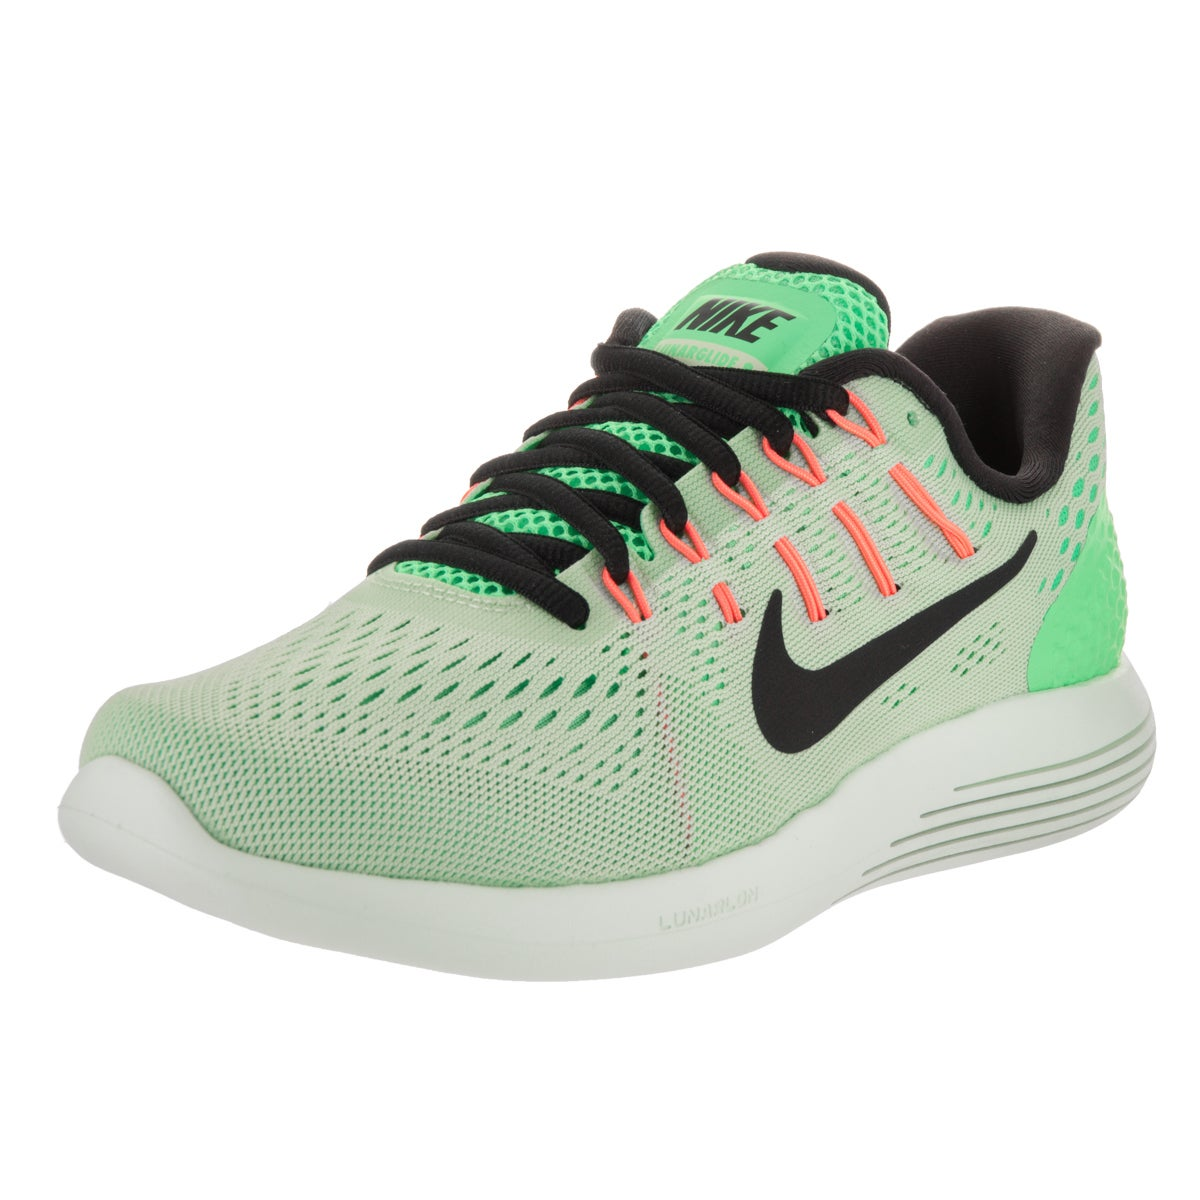 Nike Women's Lunarglide 8 Fresh Mint Green Flyknit Runnin...